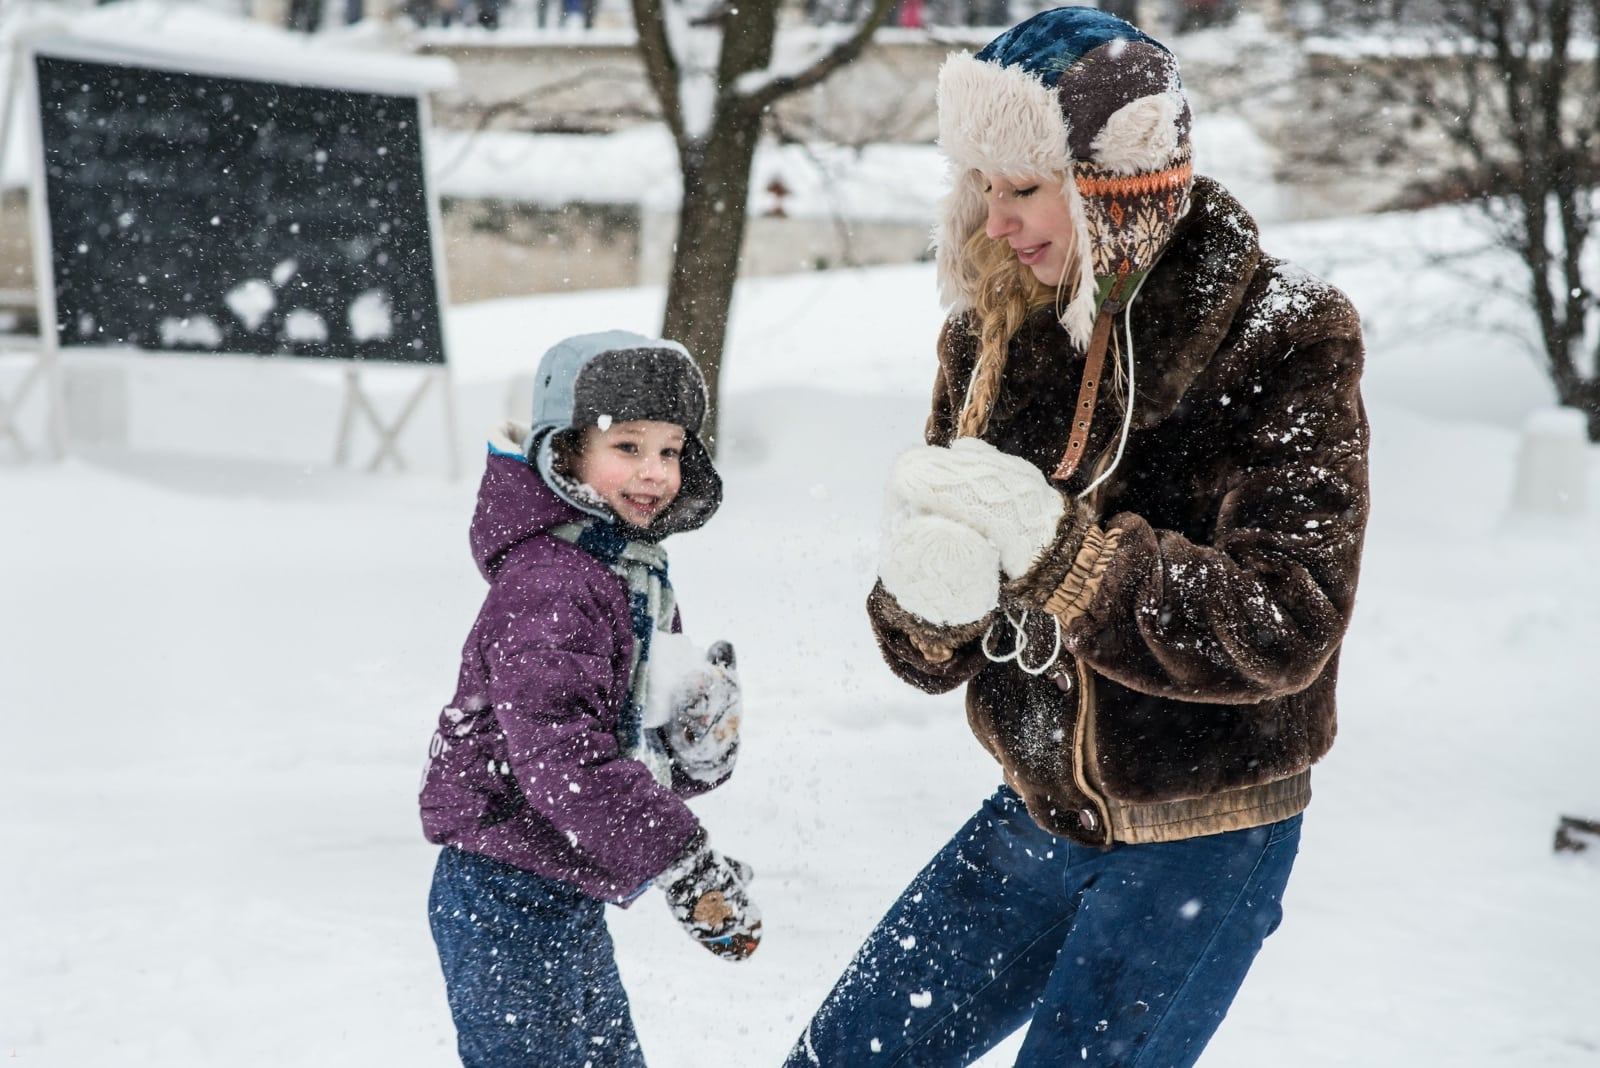 mother playing with son in snow